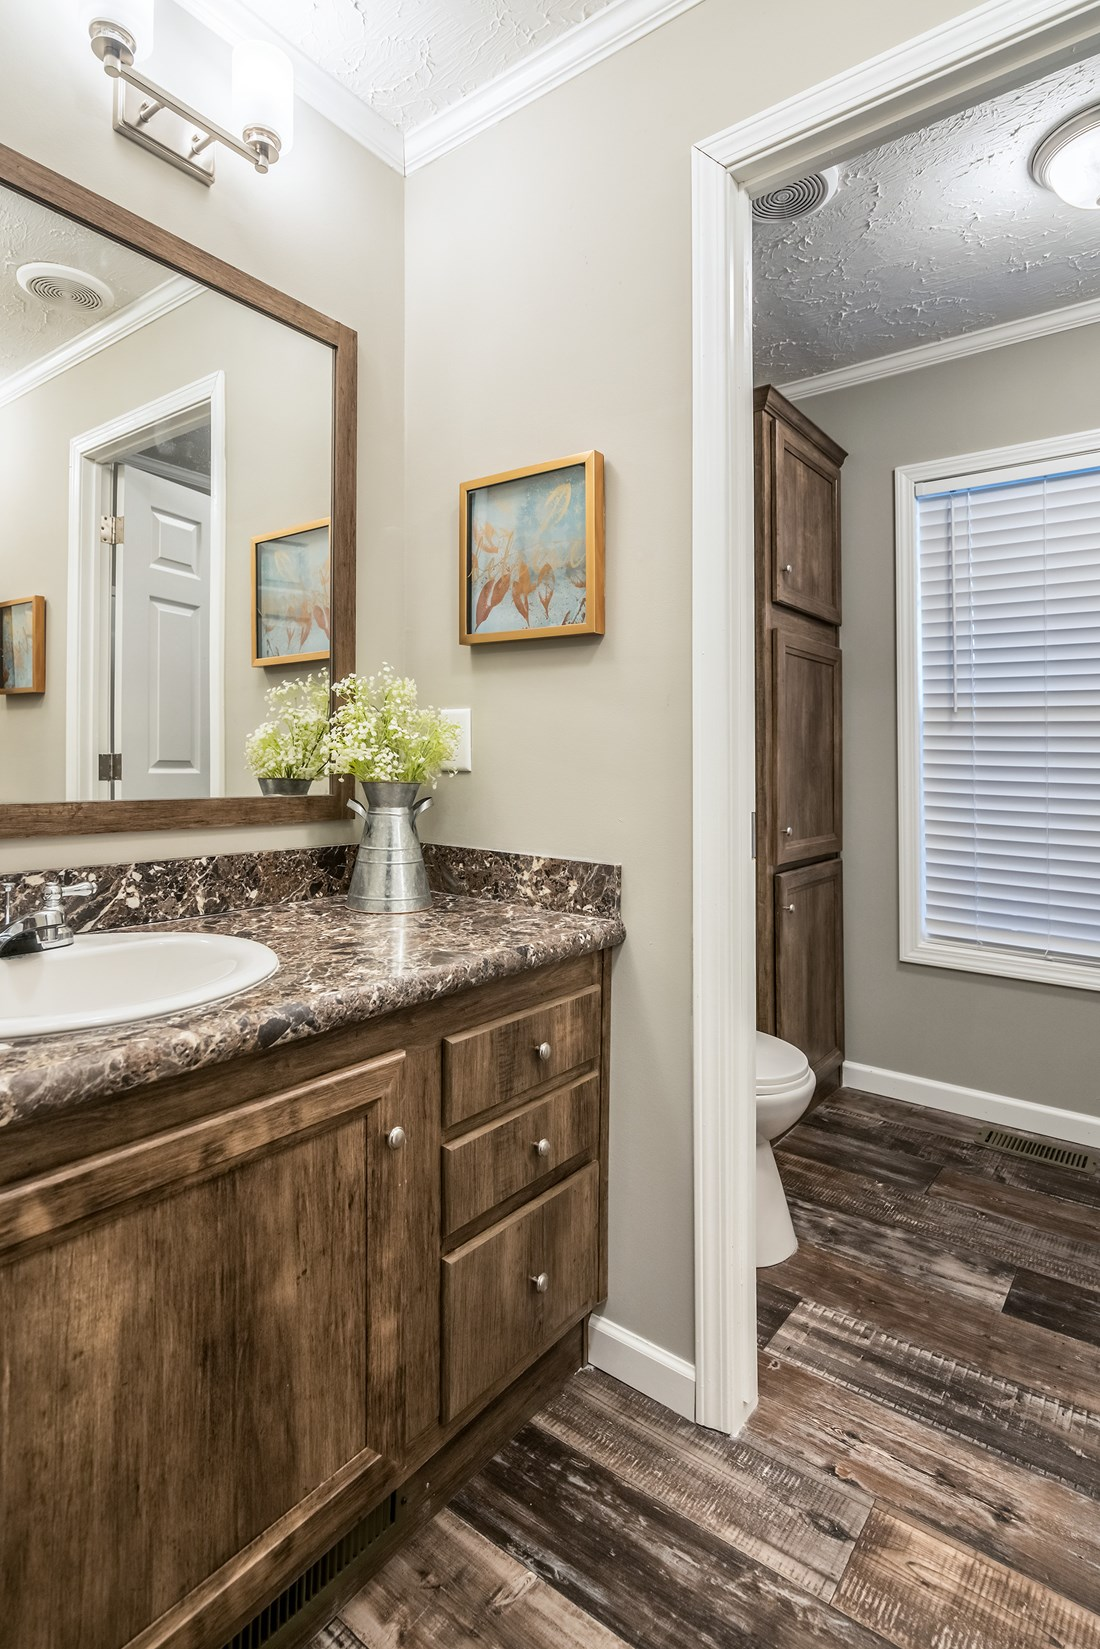 The 5607 ENTERPRISE 7228 Guest Bathroom. This Manufactured Mobile Home features 4 bedrooms and 2 baths.